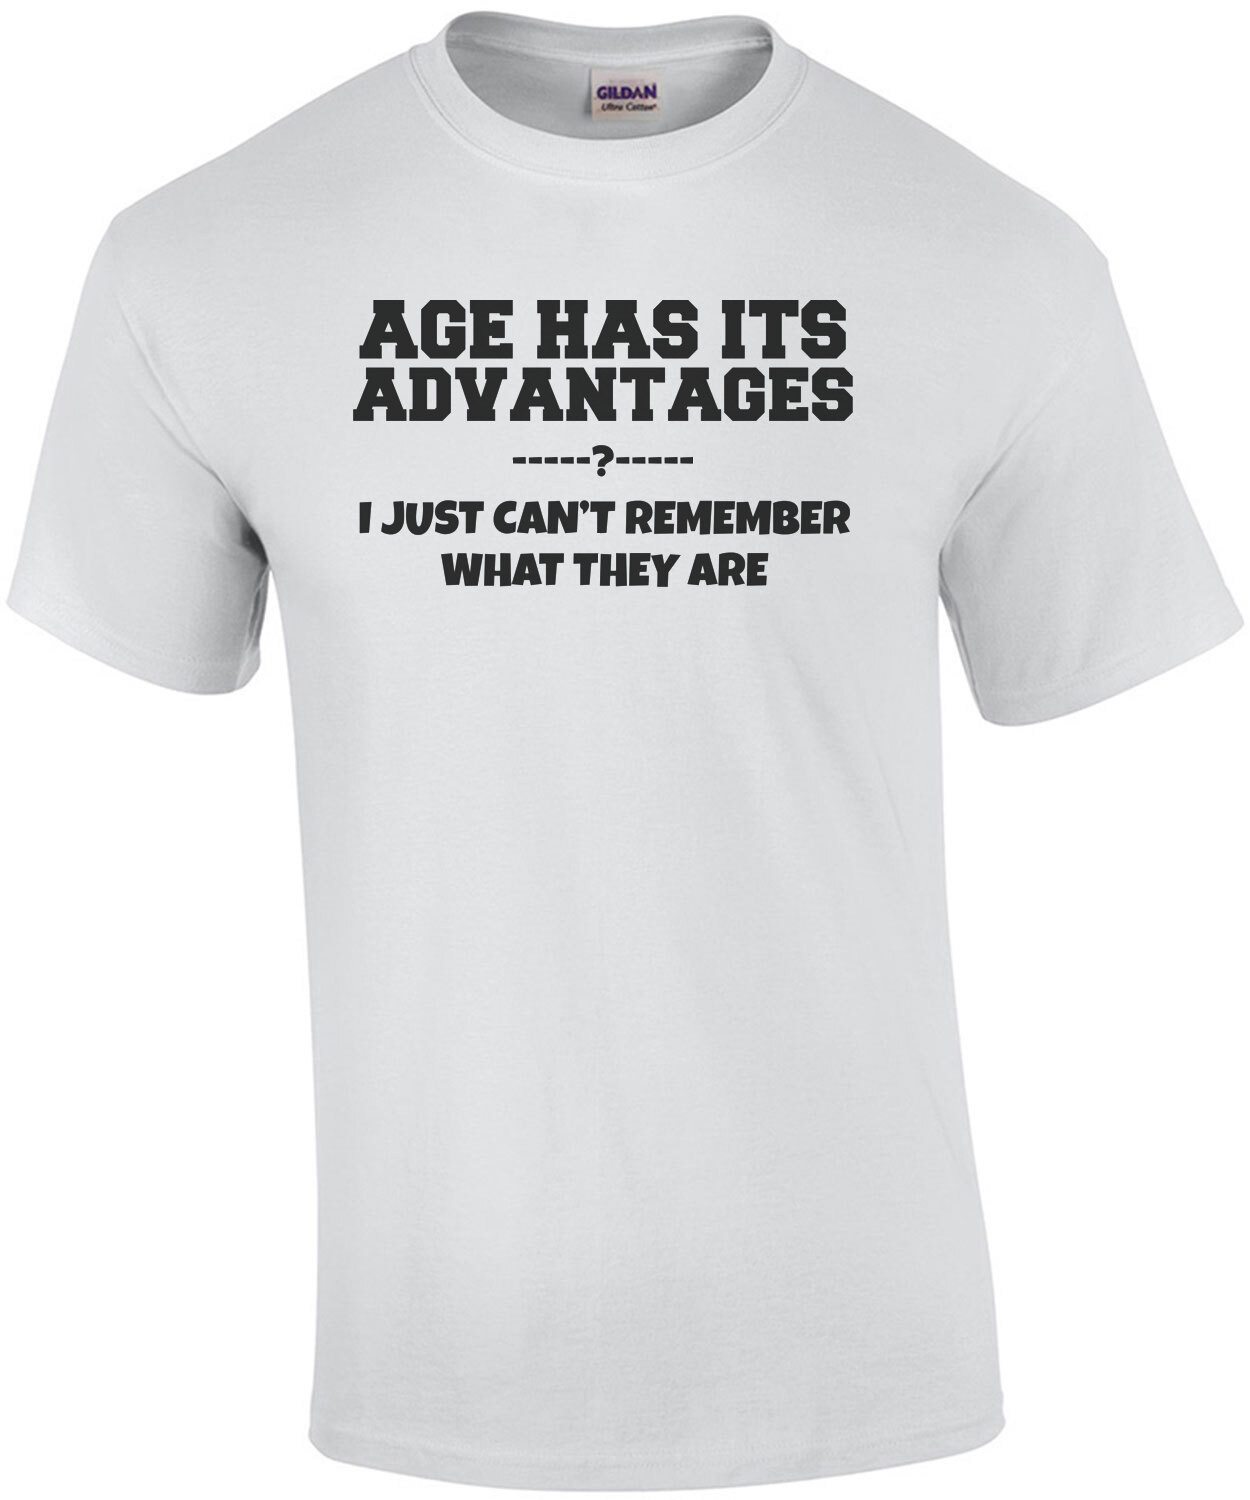 Age Has Its Advantages I Just Can't Remember What They Are Funny Shirt